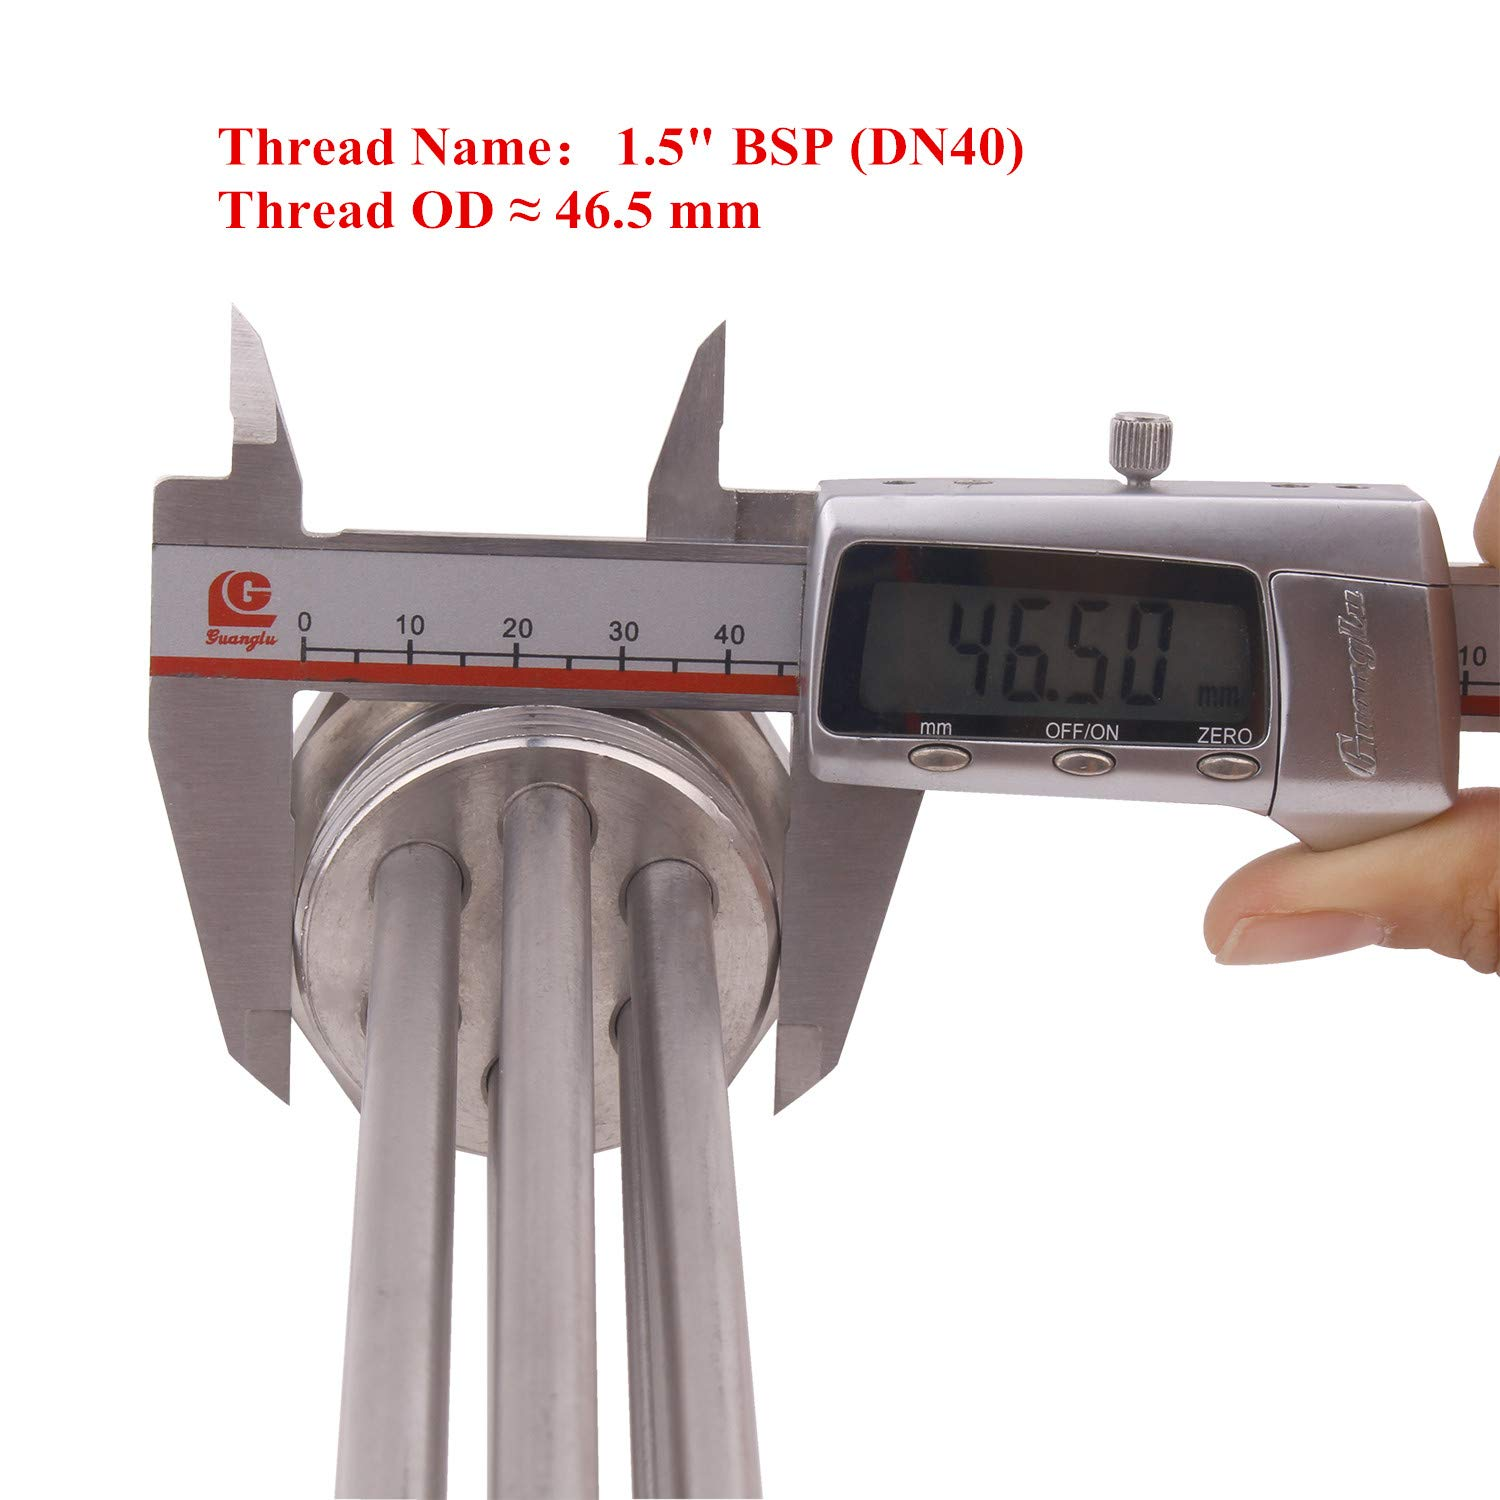 BSP Thread Stainless Steel Packed with Cap and Sealing Ring 3KW 220V Water Heater Element Durable Whole New Immersion Water Heater with 1.5 Inches DN40